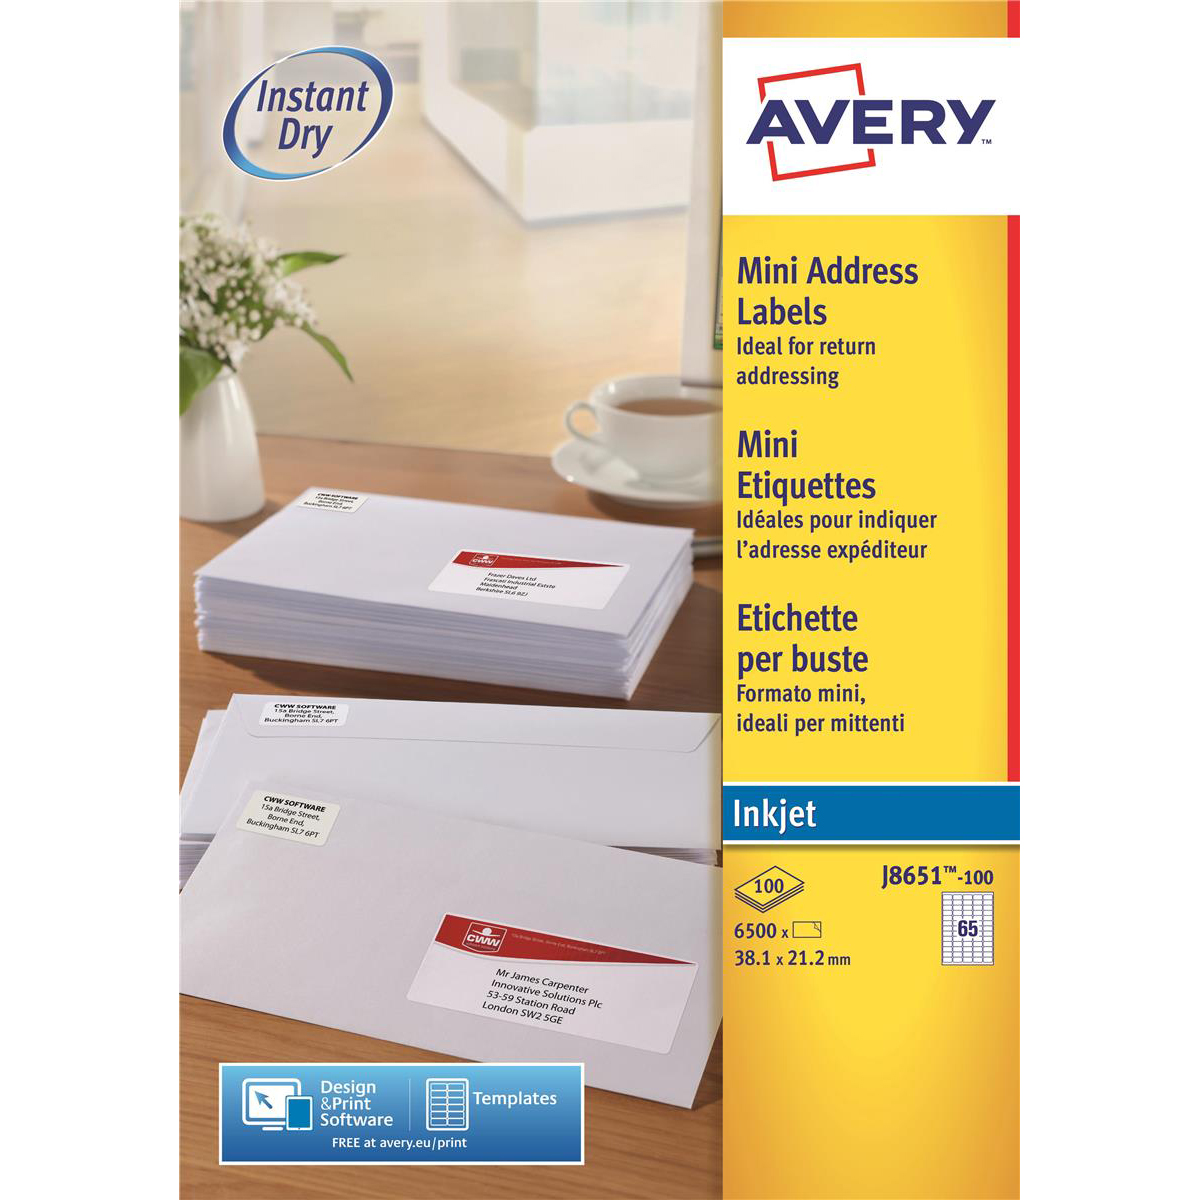 Avery J8651-100 Self-Adhesive Mini Organising/Return Address Labels, 65 Labels Per A4 Sheet